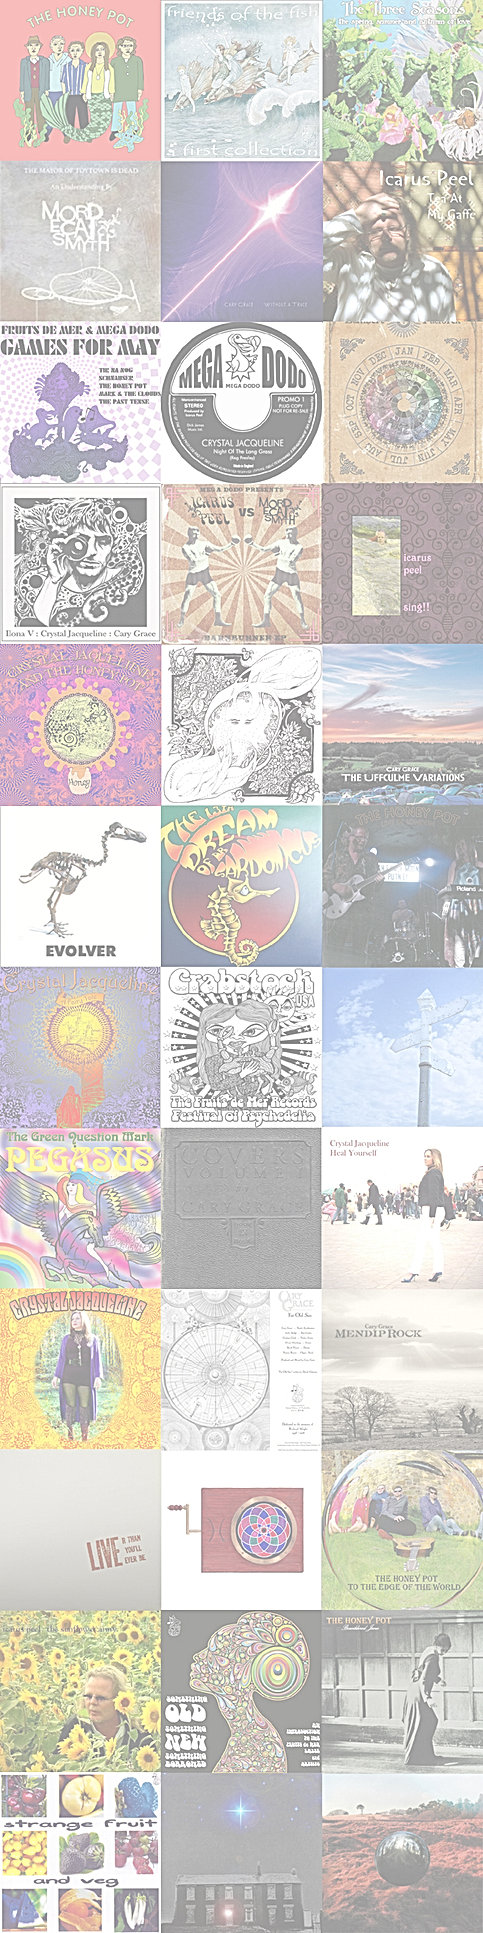 Icarus Peel's Acid Reign: Discography A